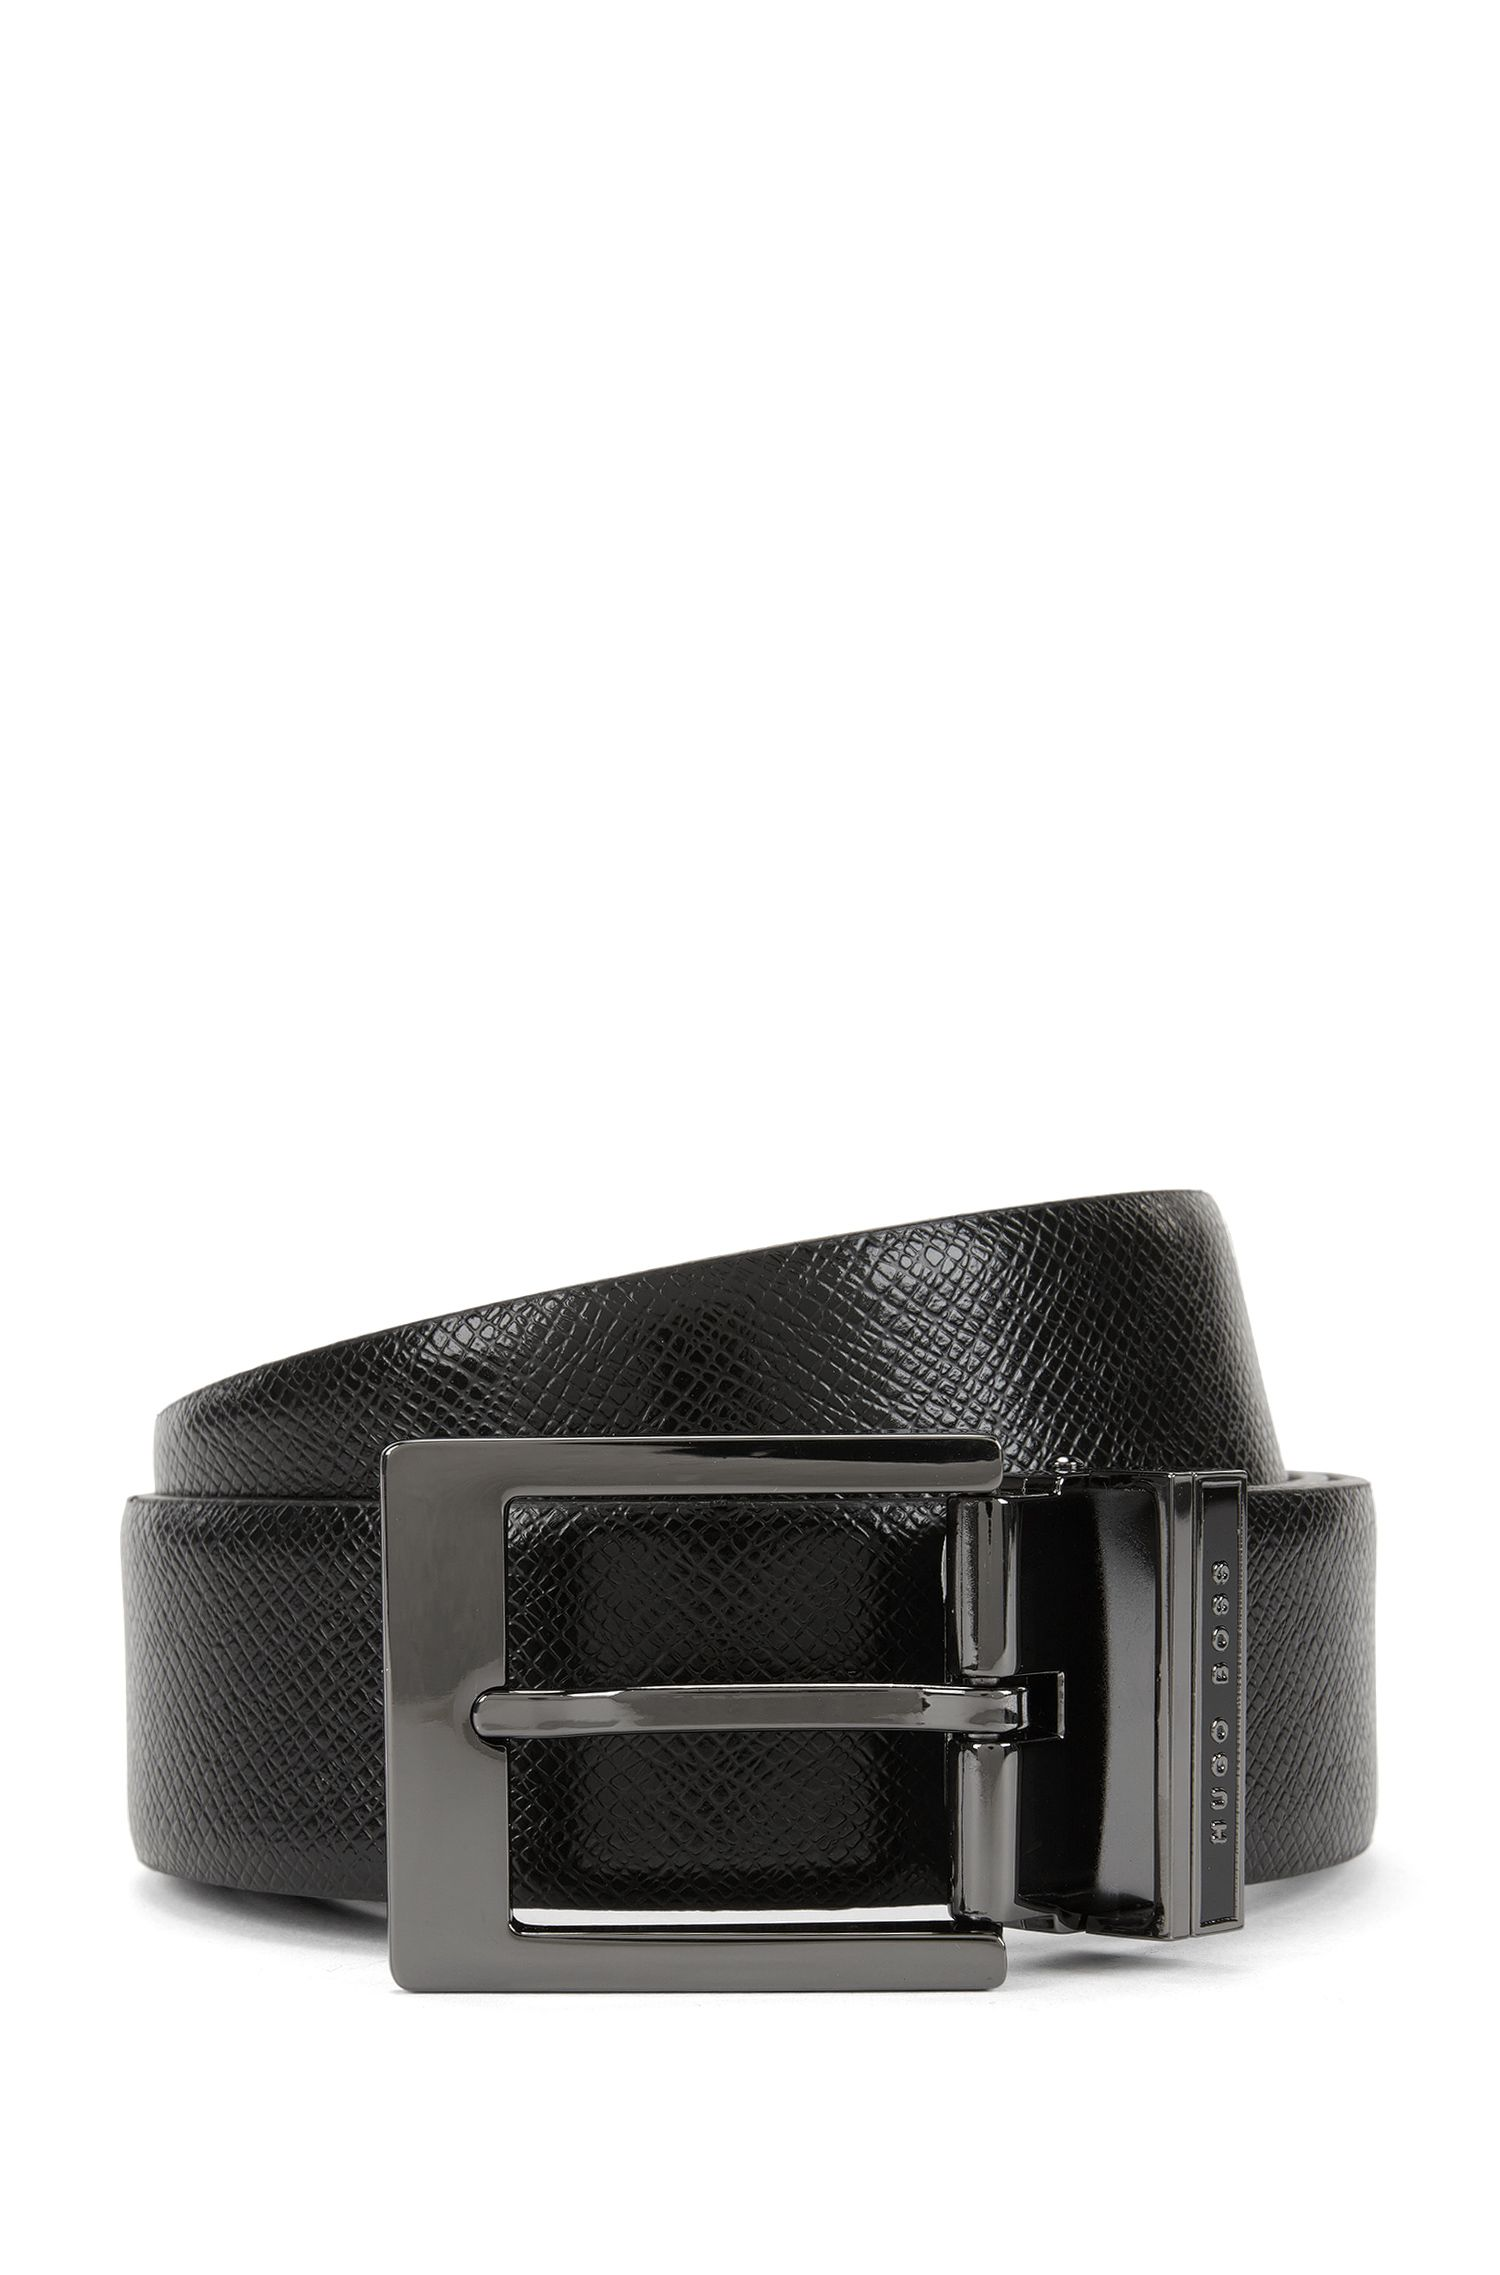 Embossed Leather Belt | Olaf Or35 Ps